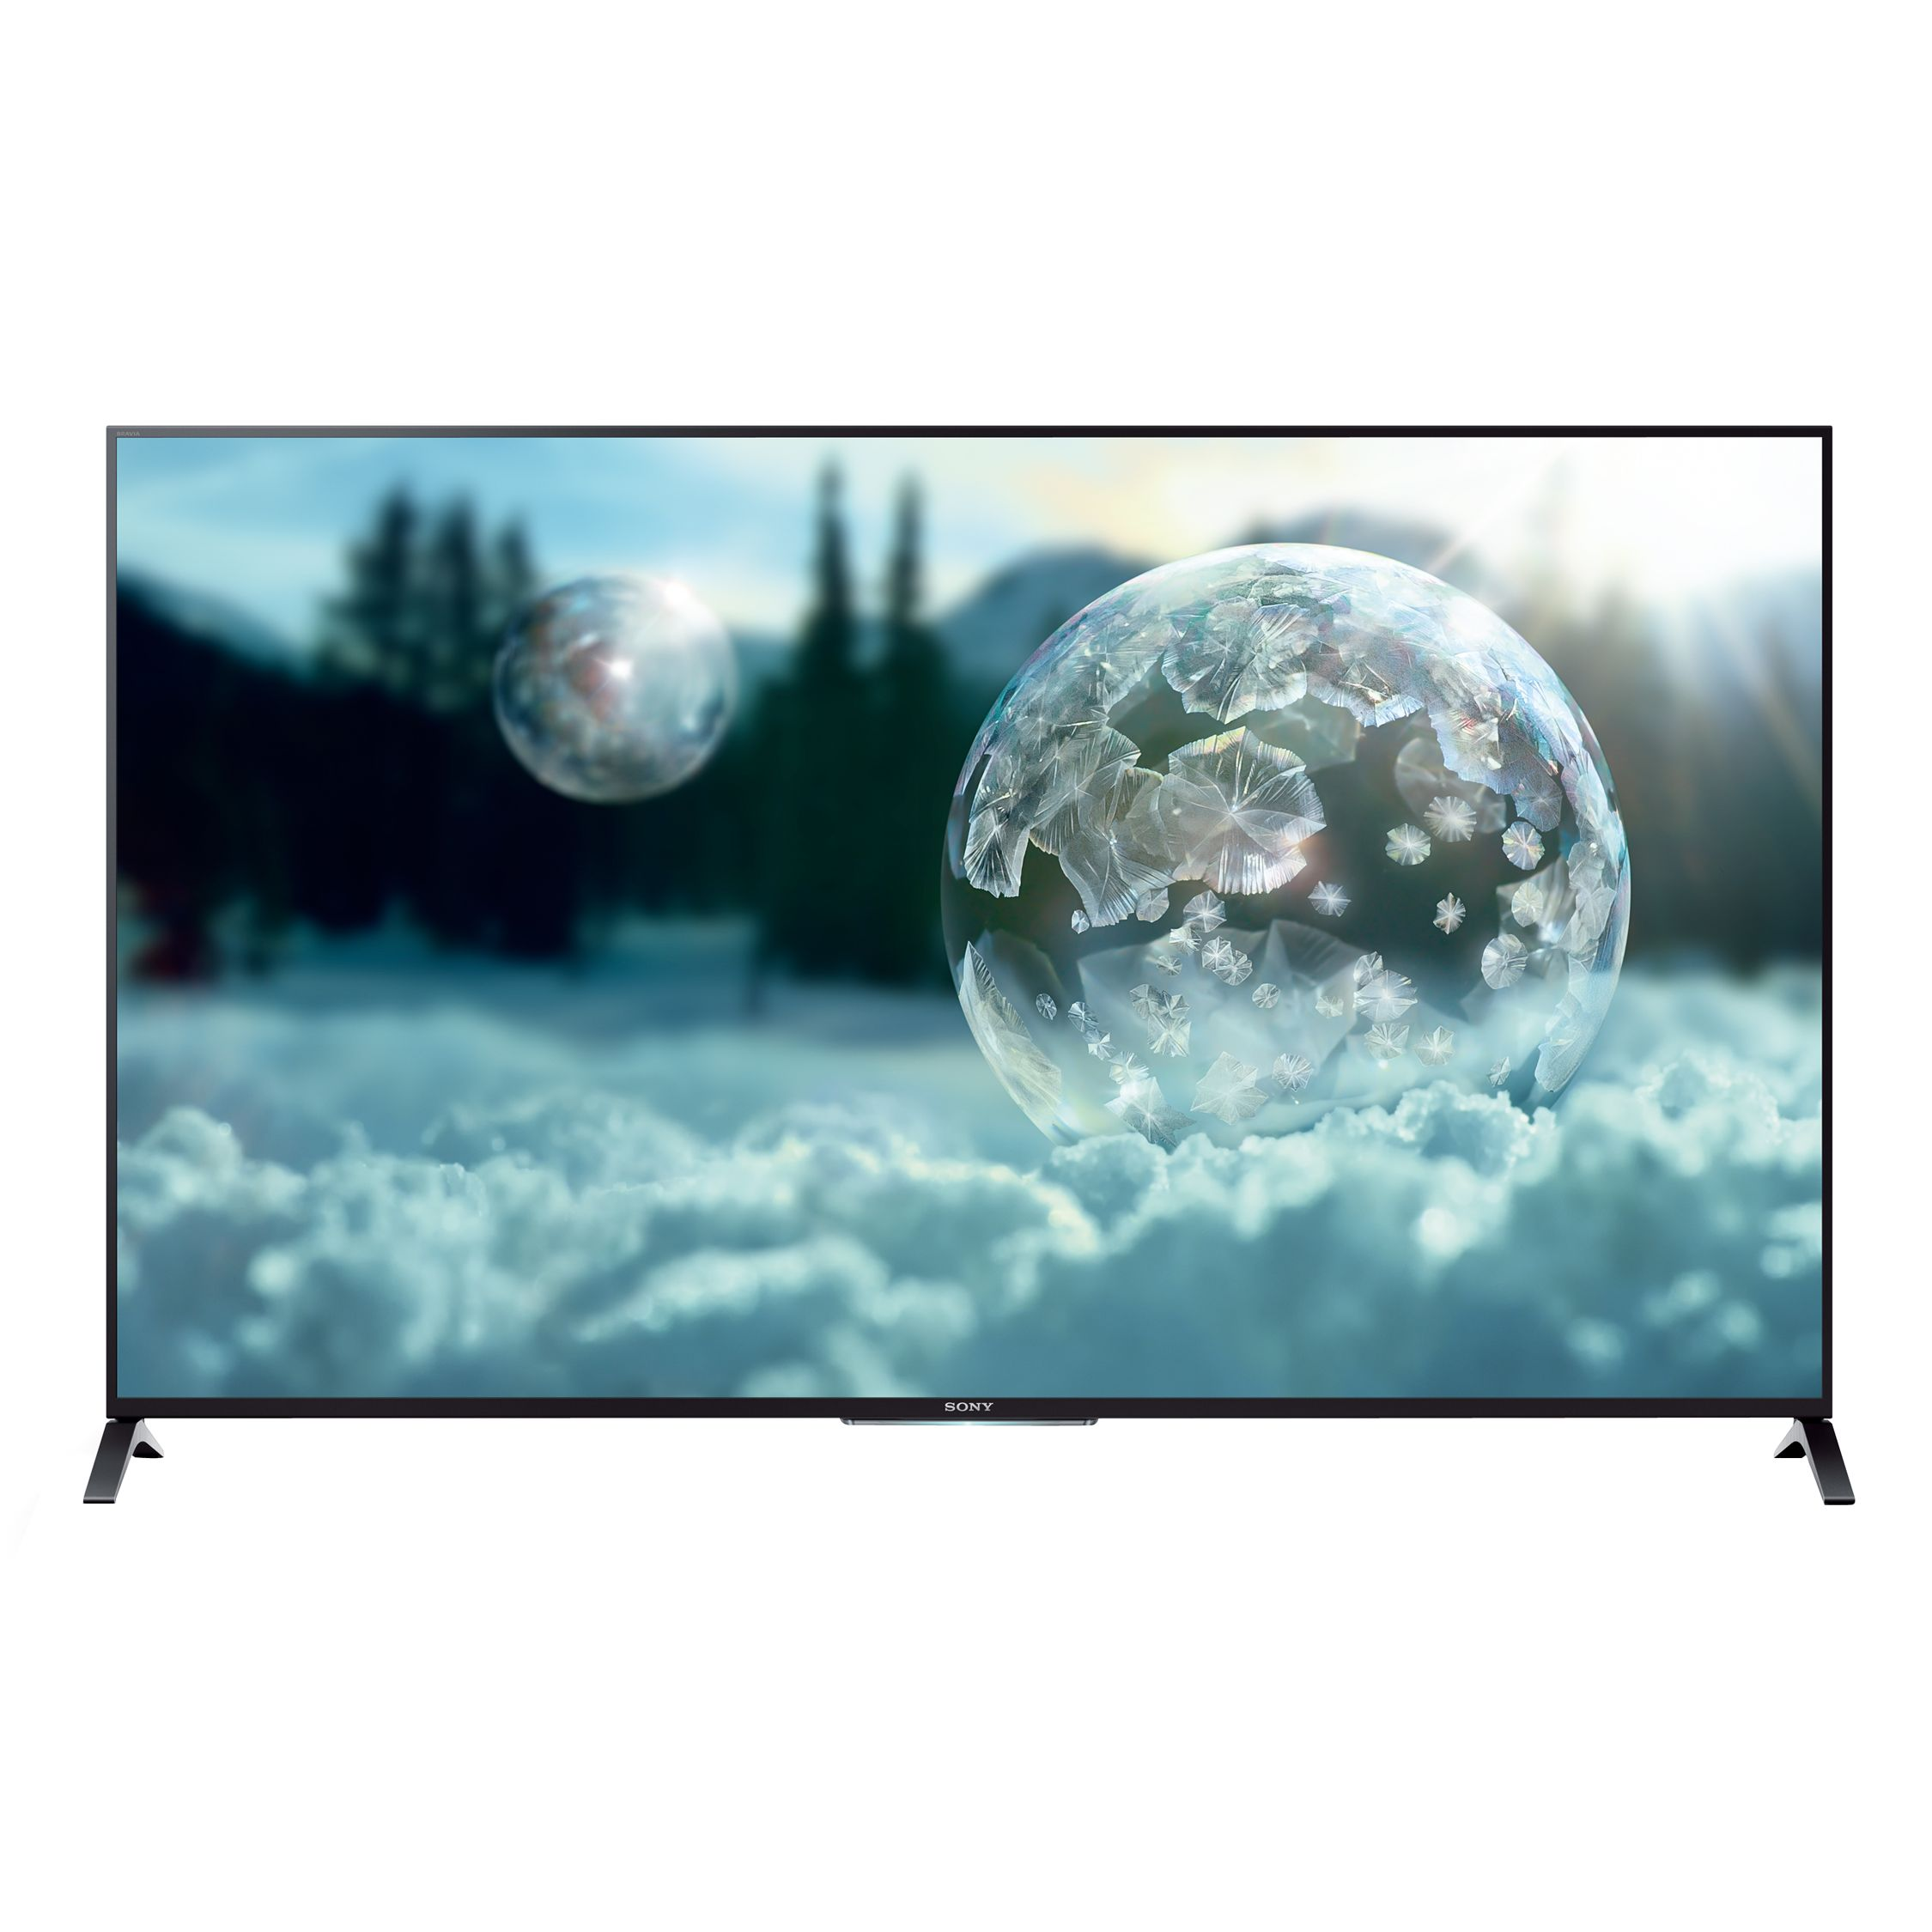 View our 4K UHD TVs